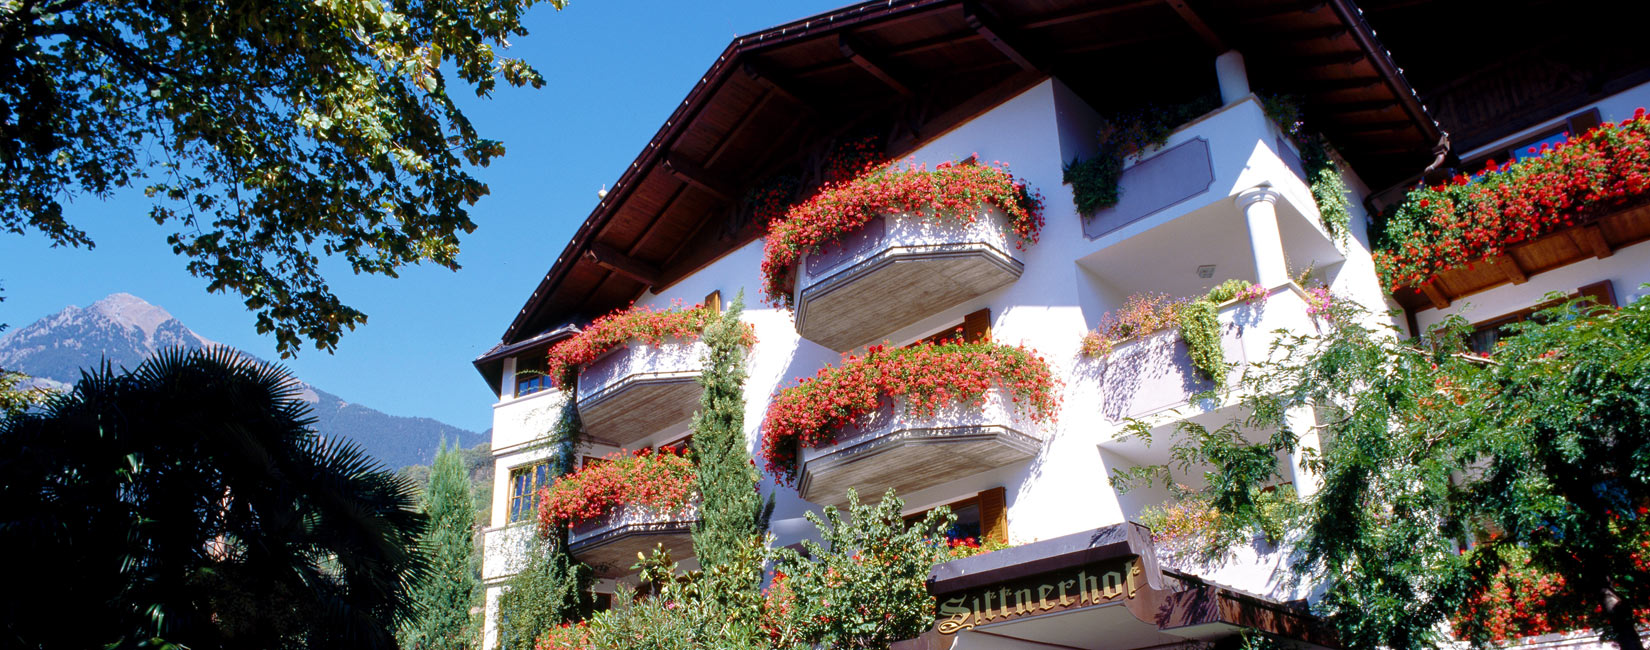 Offers in Merano – packages and flat-rates